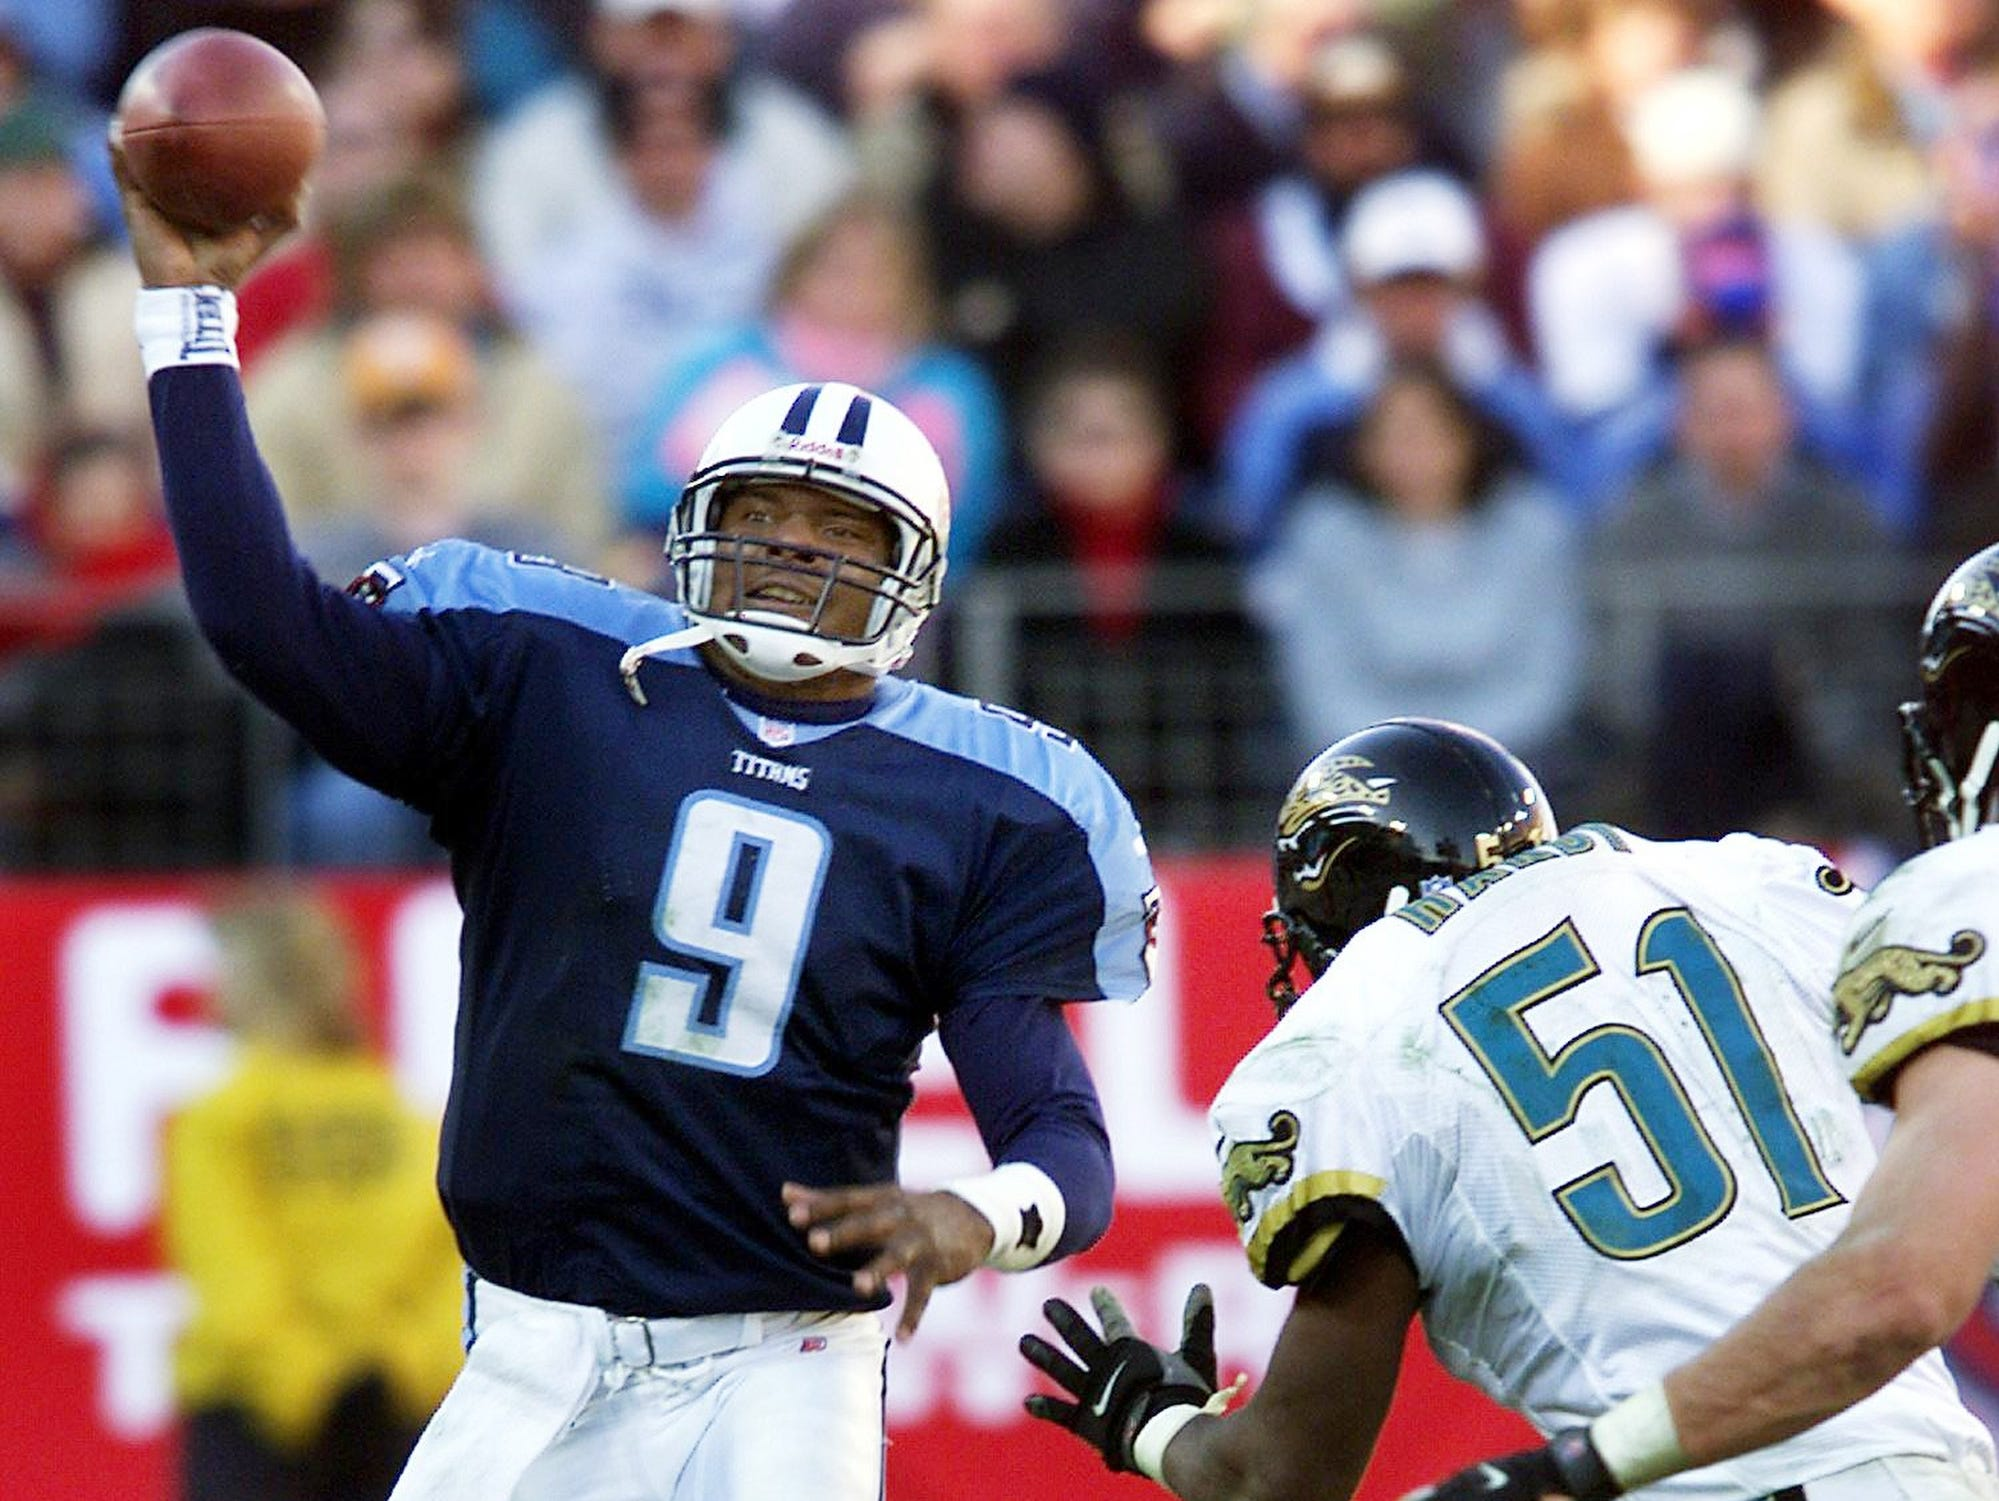 Tennessee Titans quarterback Steve McNair (9) passes over Jacksonville Jaguars defender Kevin Hardy (51) at Adelphia Coliseum Dec. 26, 1999. McNair threw for 5 touchdowns on the day before taking the bench in the 4th quarter of 41-14 victory.